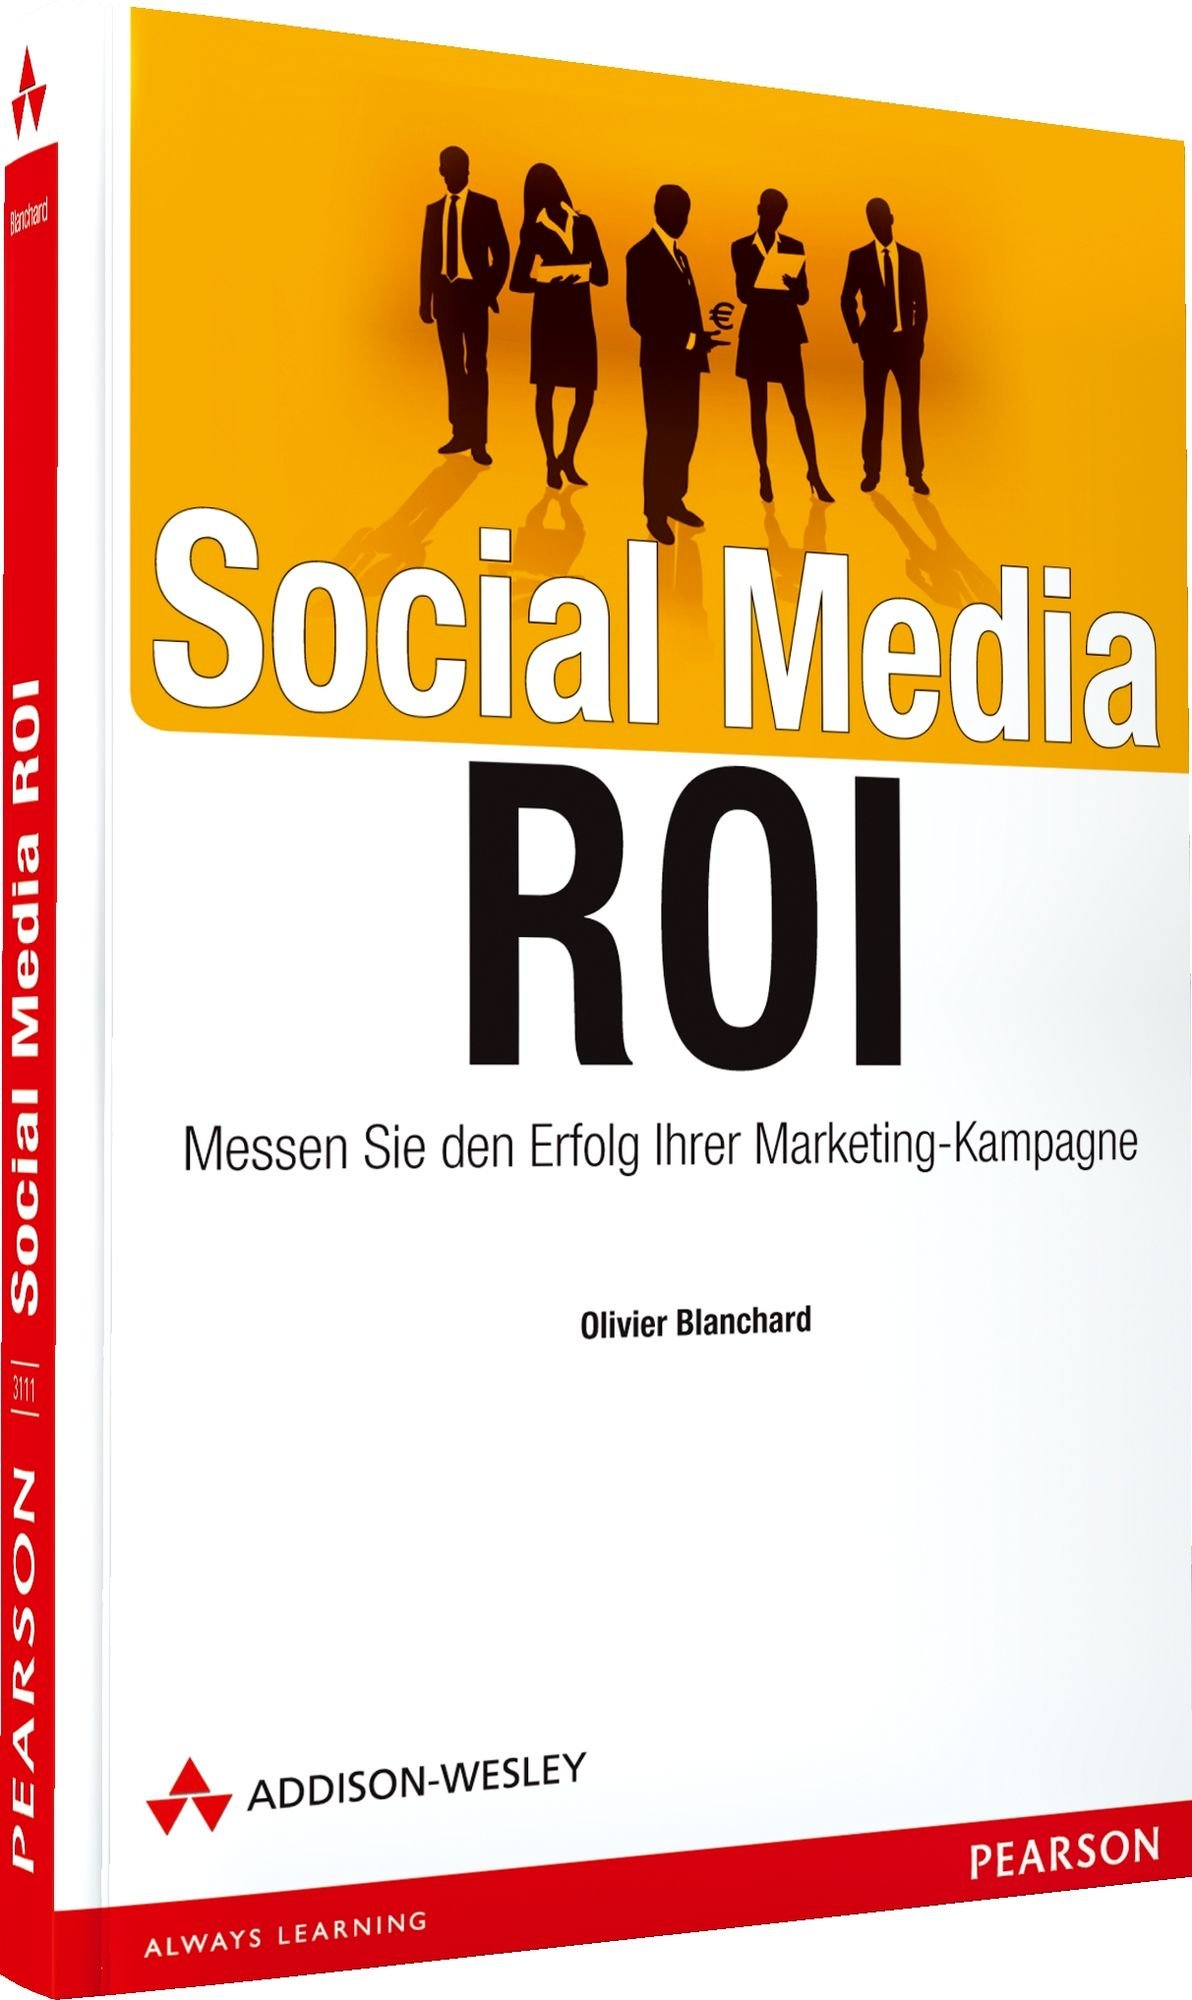 social-media-roi-messen-sie-den-erfolg-ihrer-marketing-kampagne-bizztec